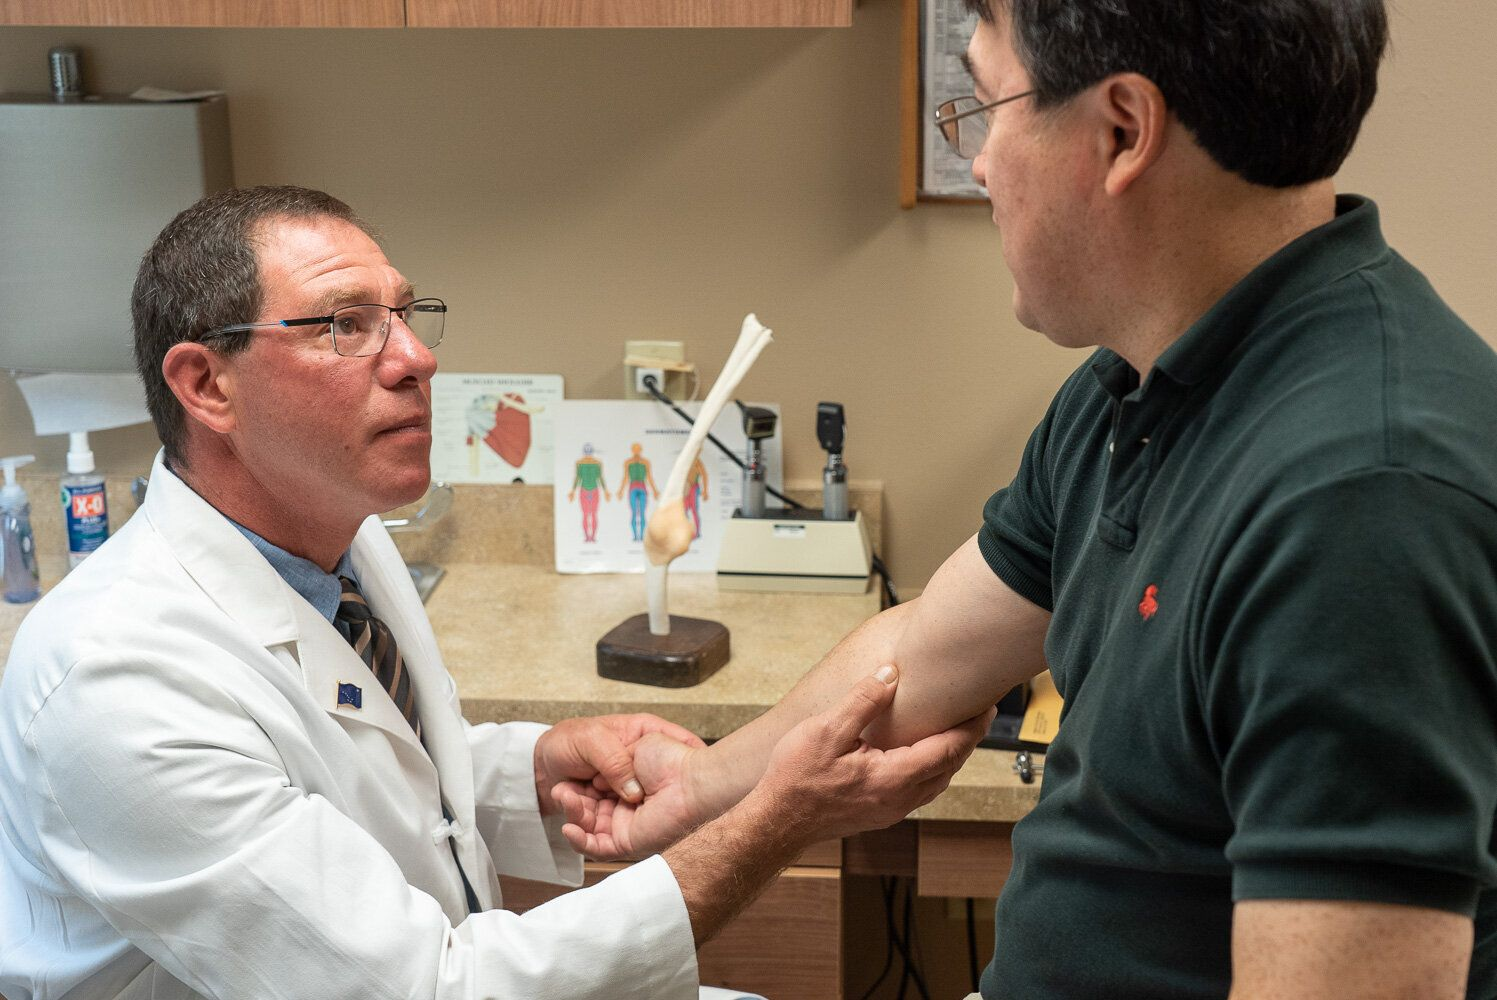 Al Gross' experience as a successful orthopedic surgeon disillusioned him with the U.S. health care system. He went on to get